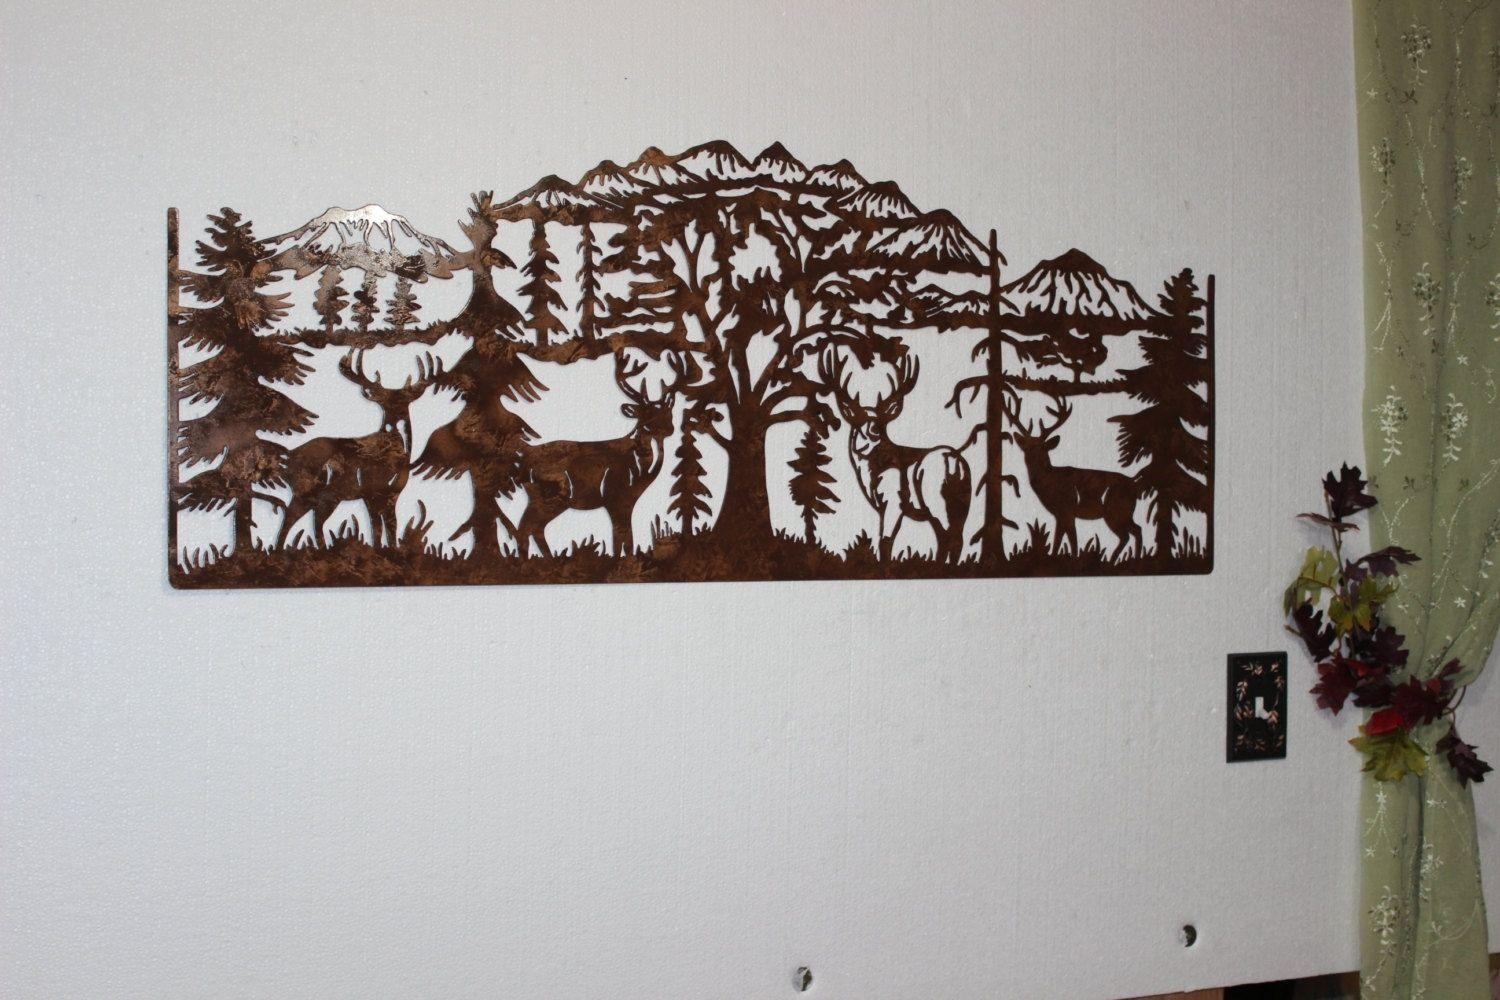 Hand Crafted Deer And Mountain Scene With 4 Majestic Bucks Large Pertaining To Mountain Scene Metal Wall Art (View 3 of 20)